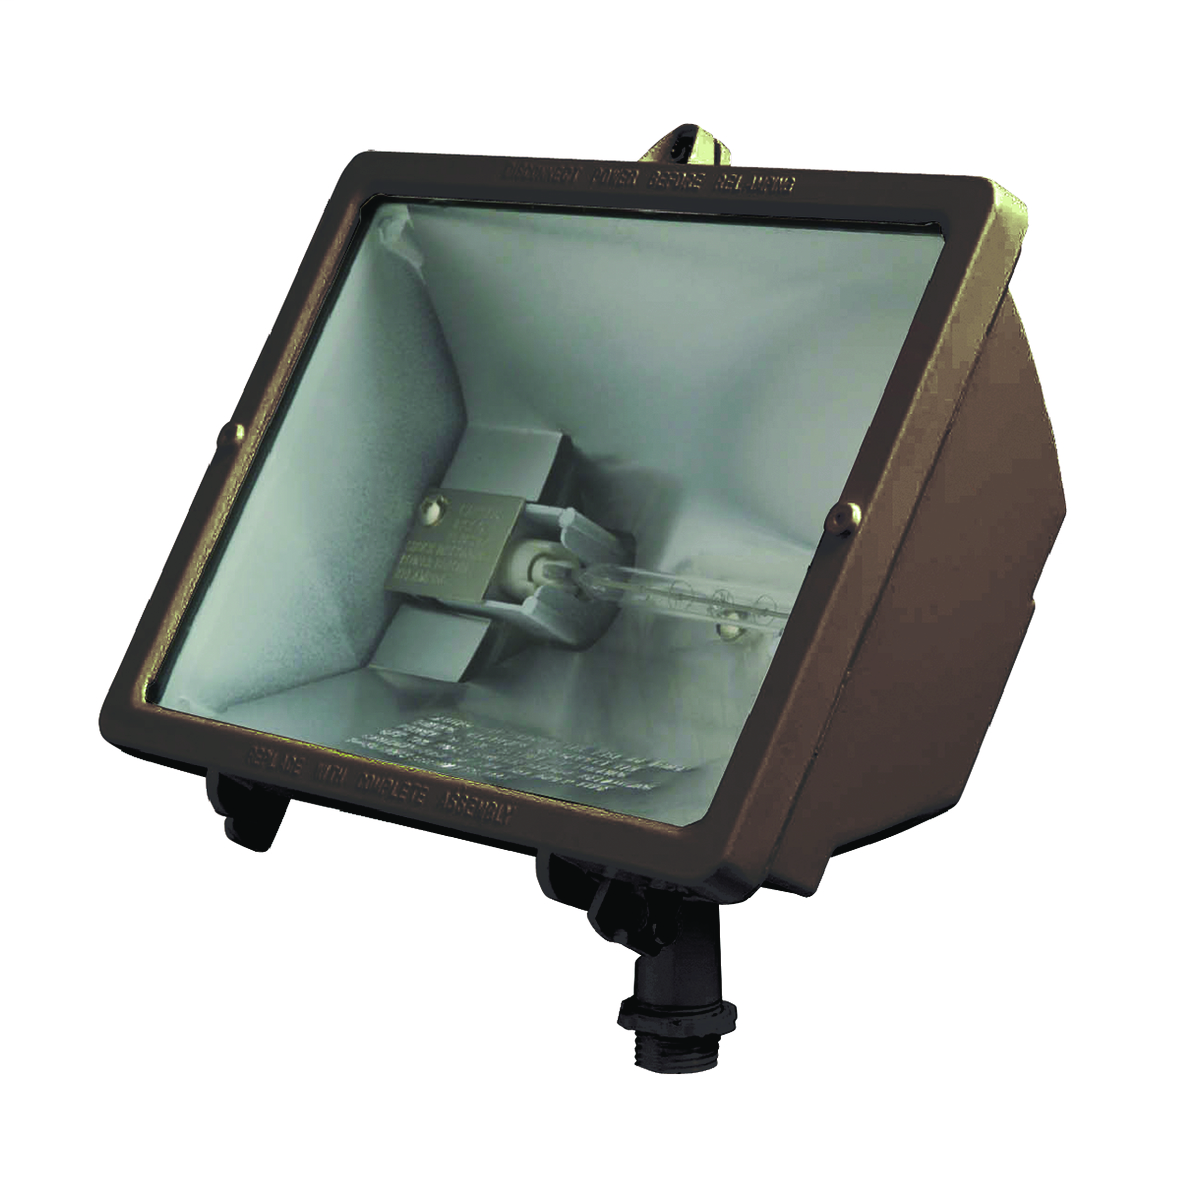 Q Series Quartz Floods, Light Source: HID, Quartz, Lamp Included: Yes, Mounting Type: 1/2 IN cast swivel knuckle fits standard boxes and covers, Wattage: 500 W, Dark Bronze, Voltage Rating: 120 VAC.